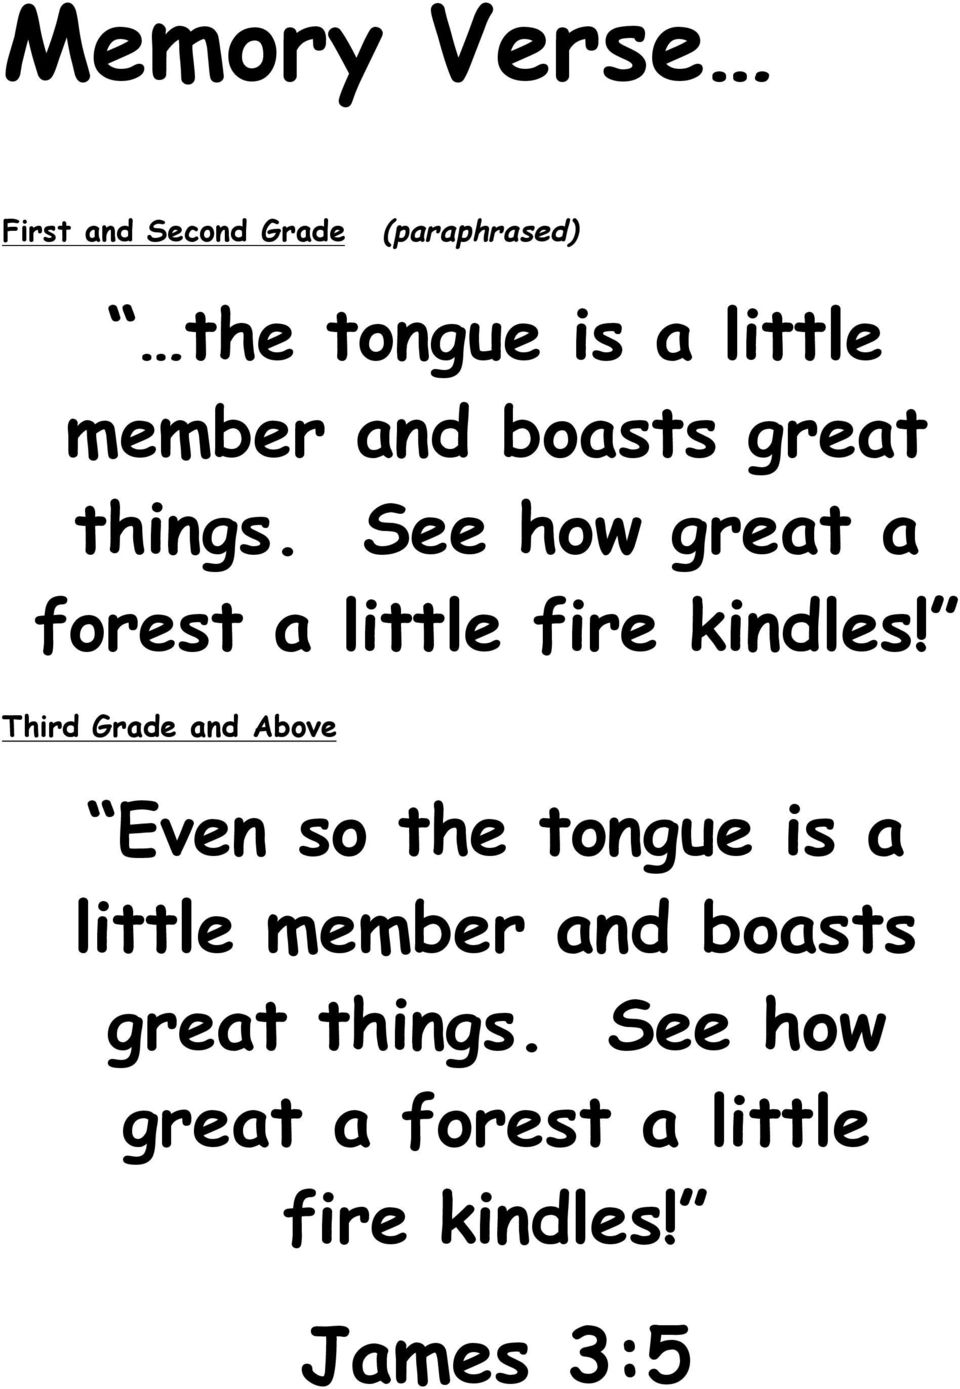 See how great a forest a little fire kindles!